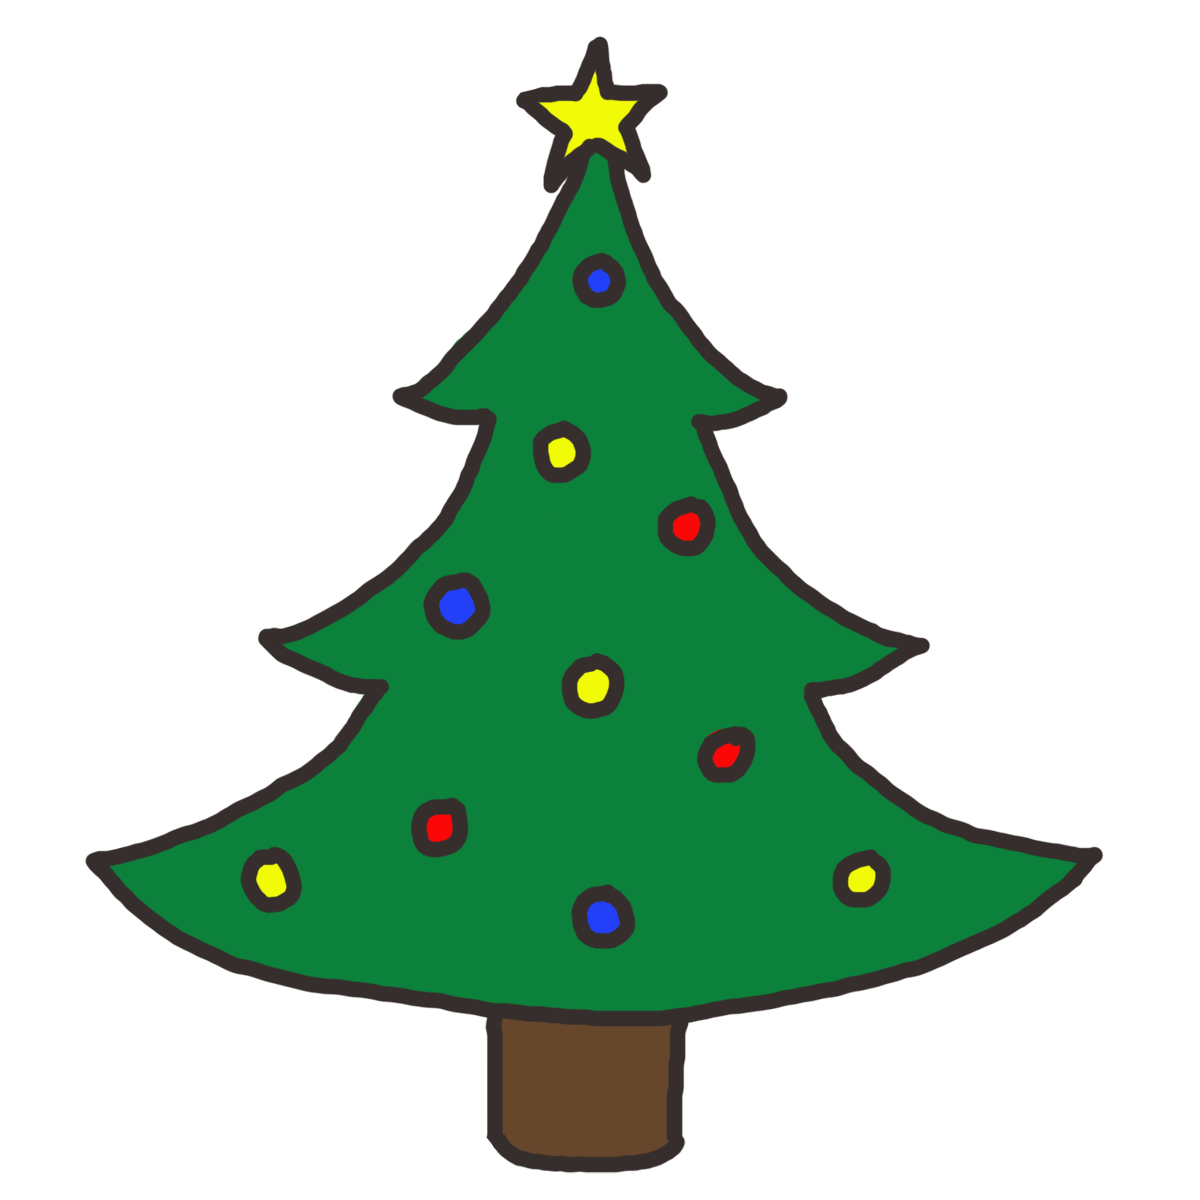 Chrismas tree clipart image download Christmas tree clip arts - ClipartFox image download